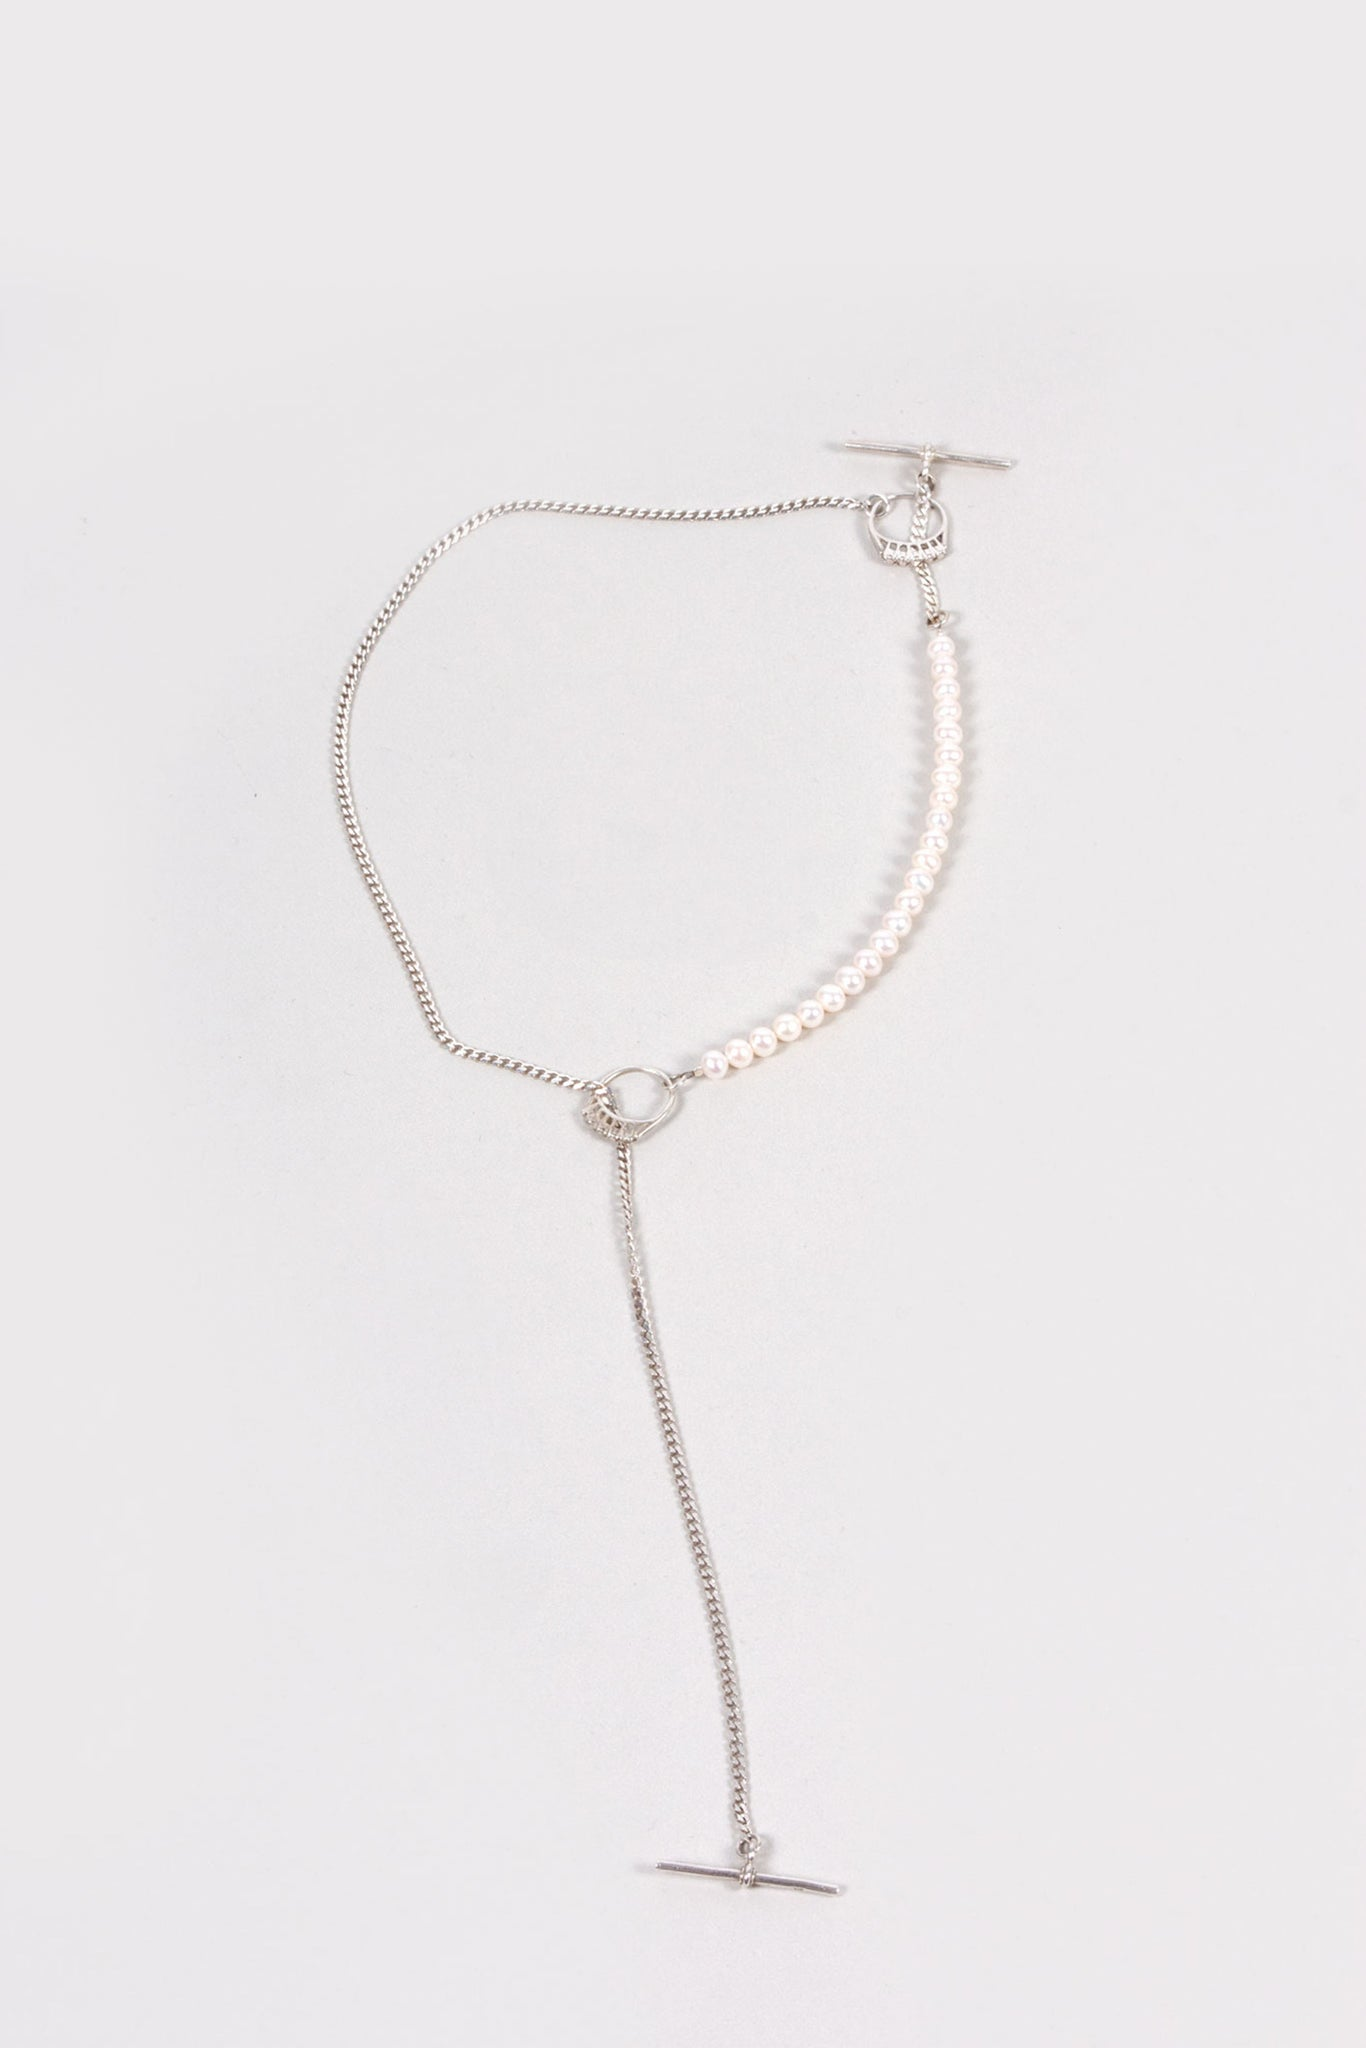 Diamonds and Pearls Necklace | Sterling Silver + White Pearls